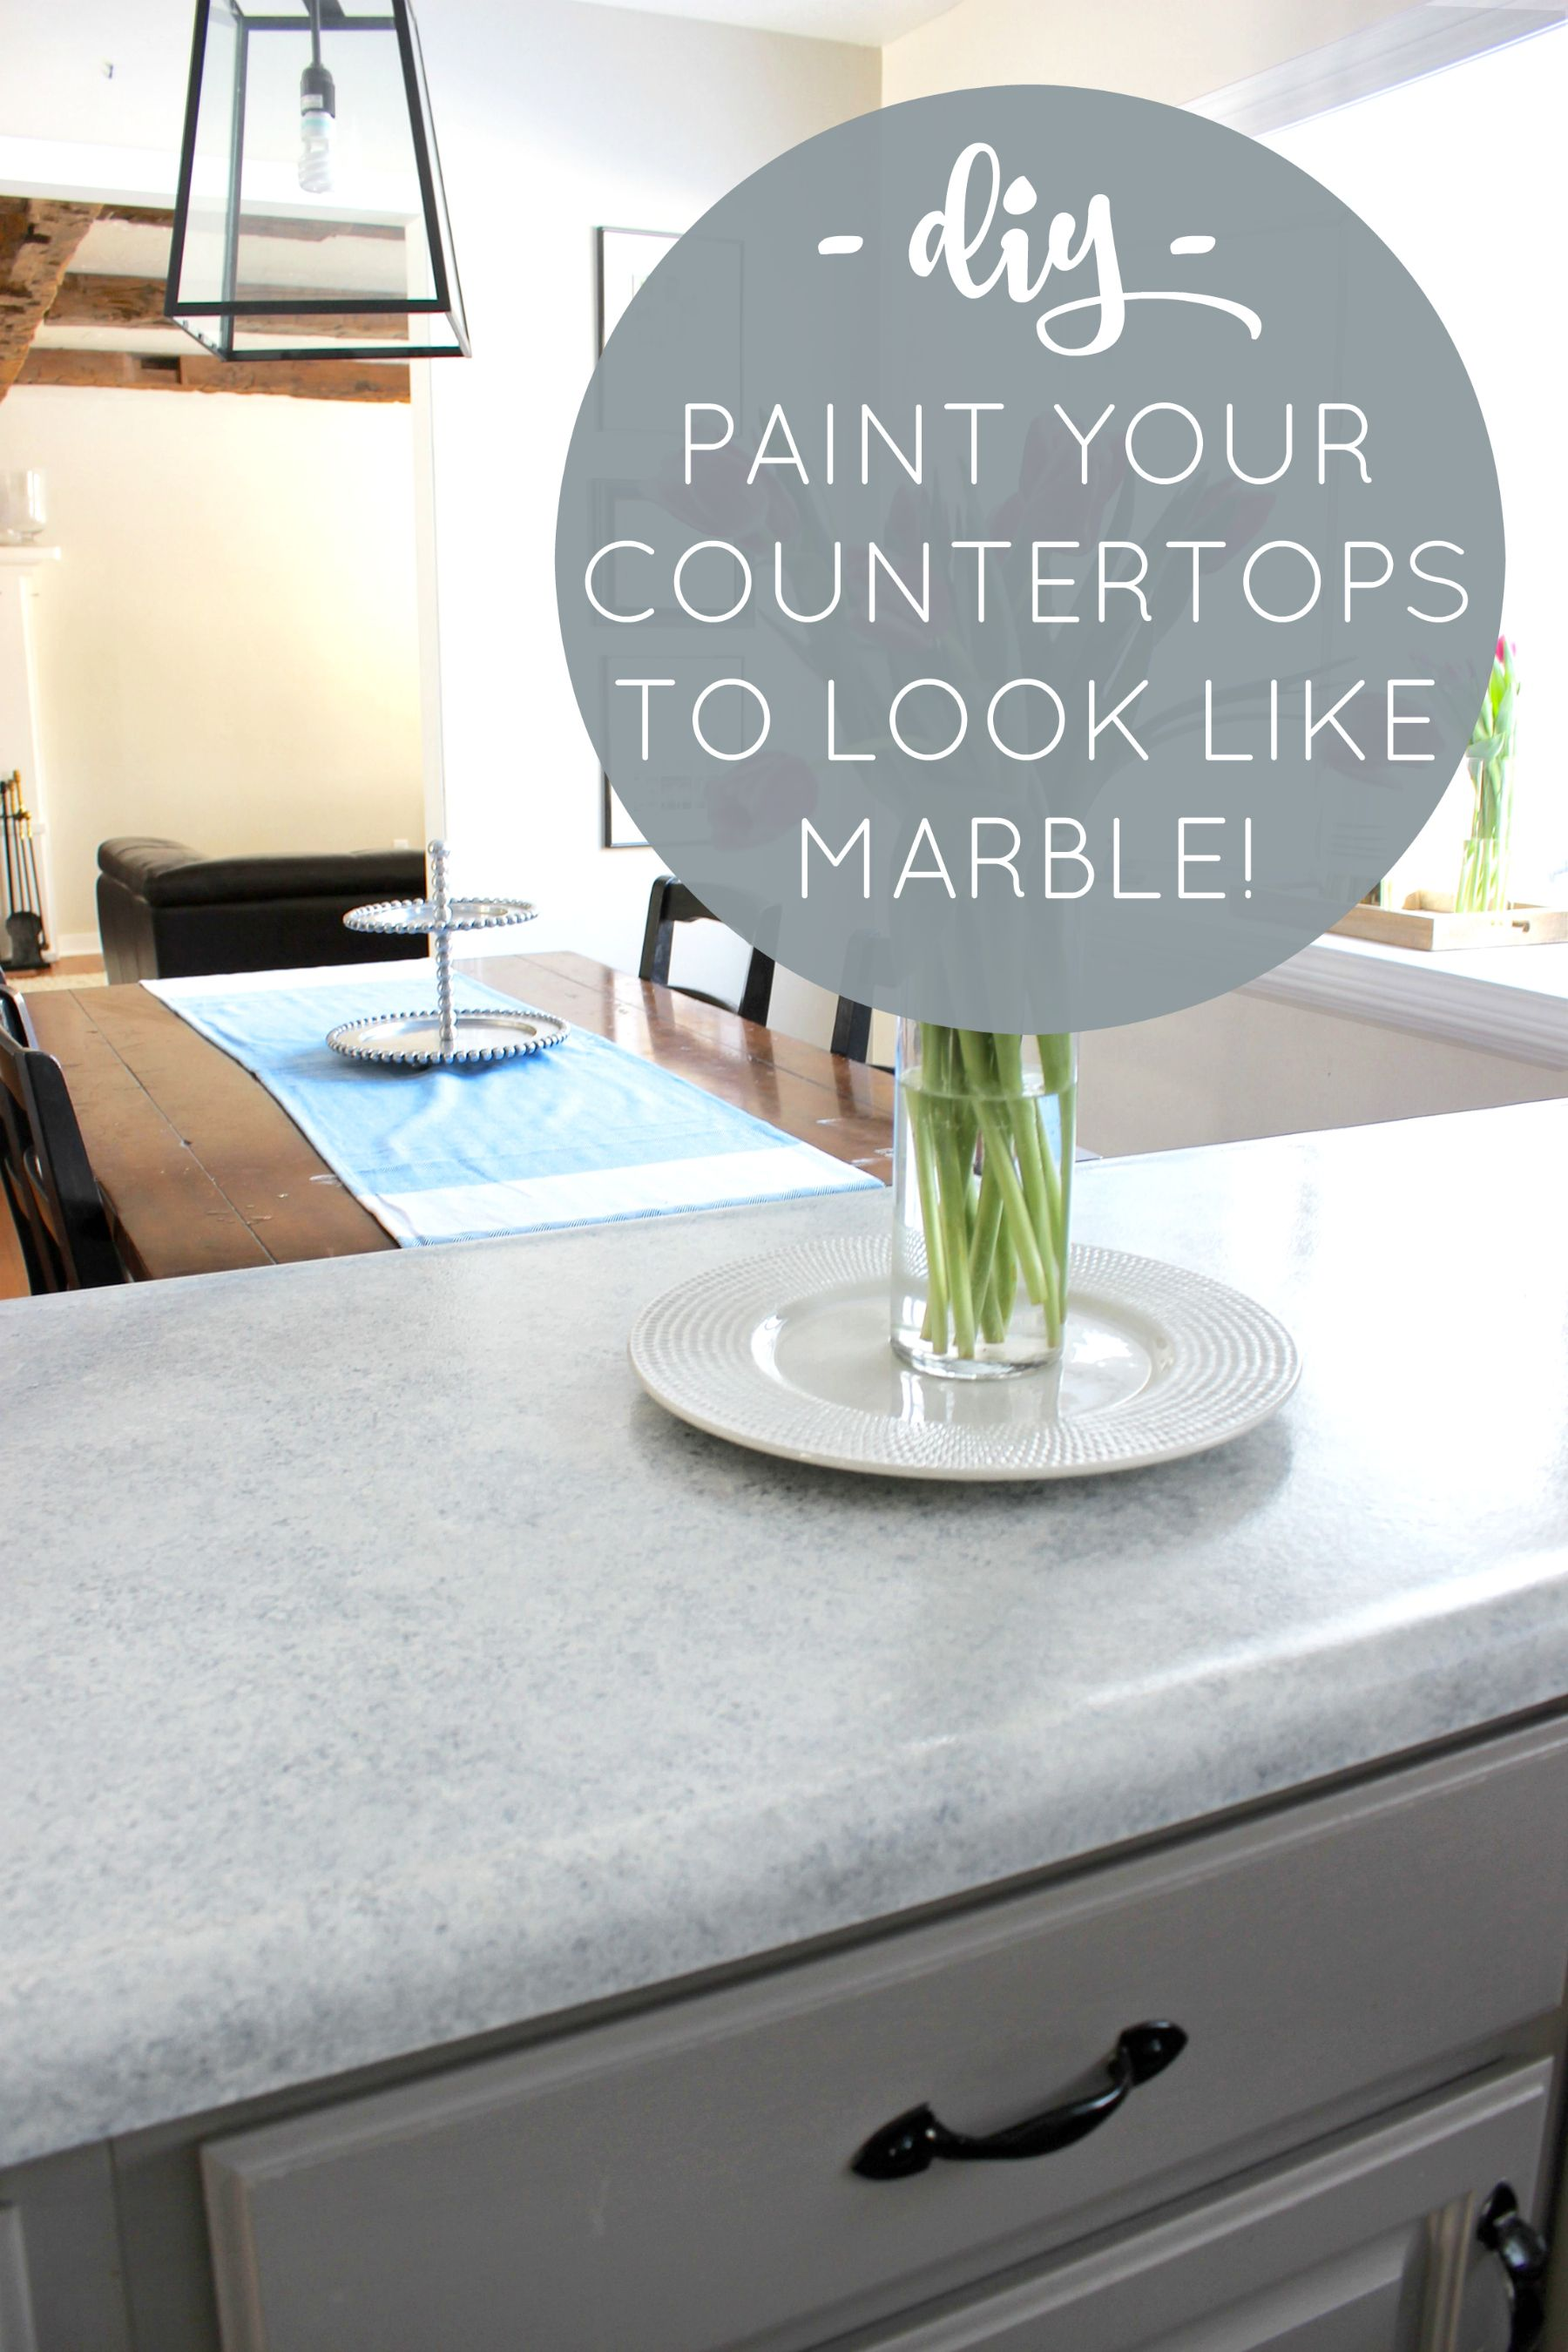 diy marble countertops from outdated laminate to